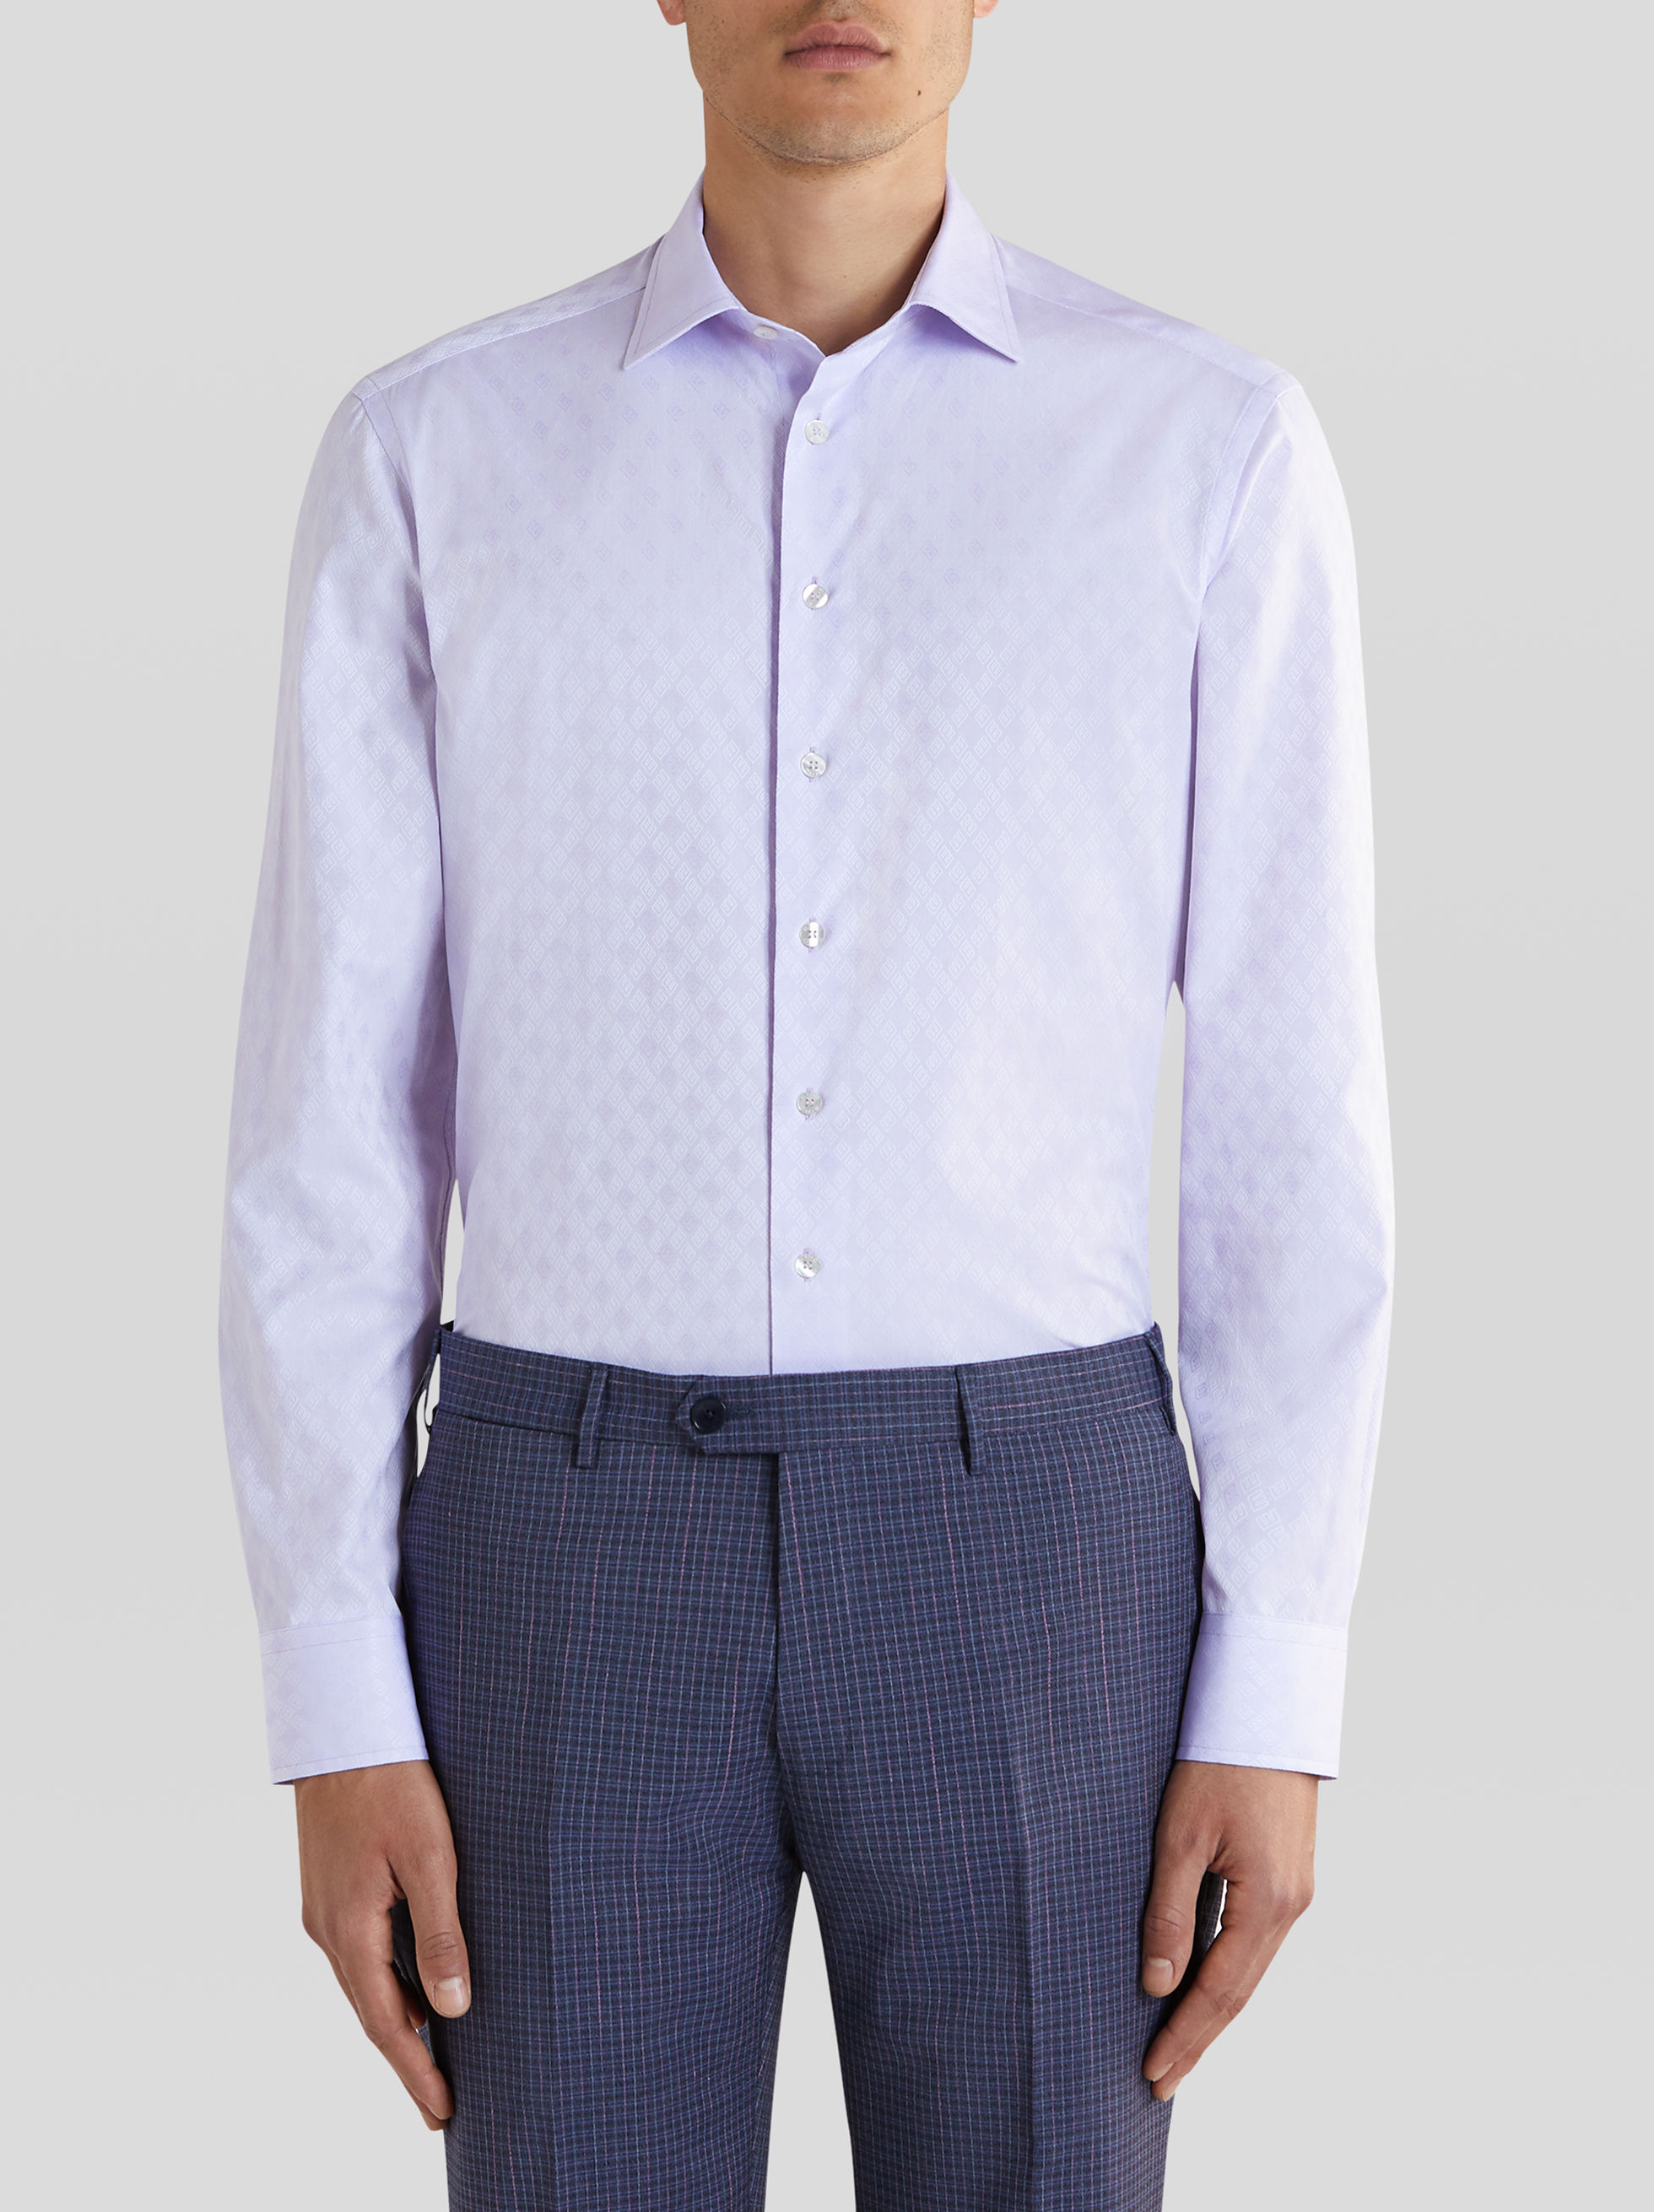 COTTON JACQUARD SHIRT WITH LOGO